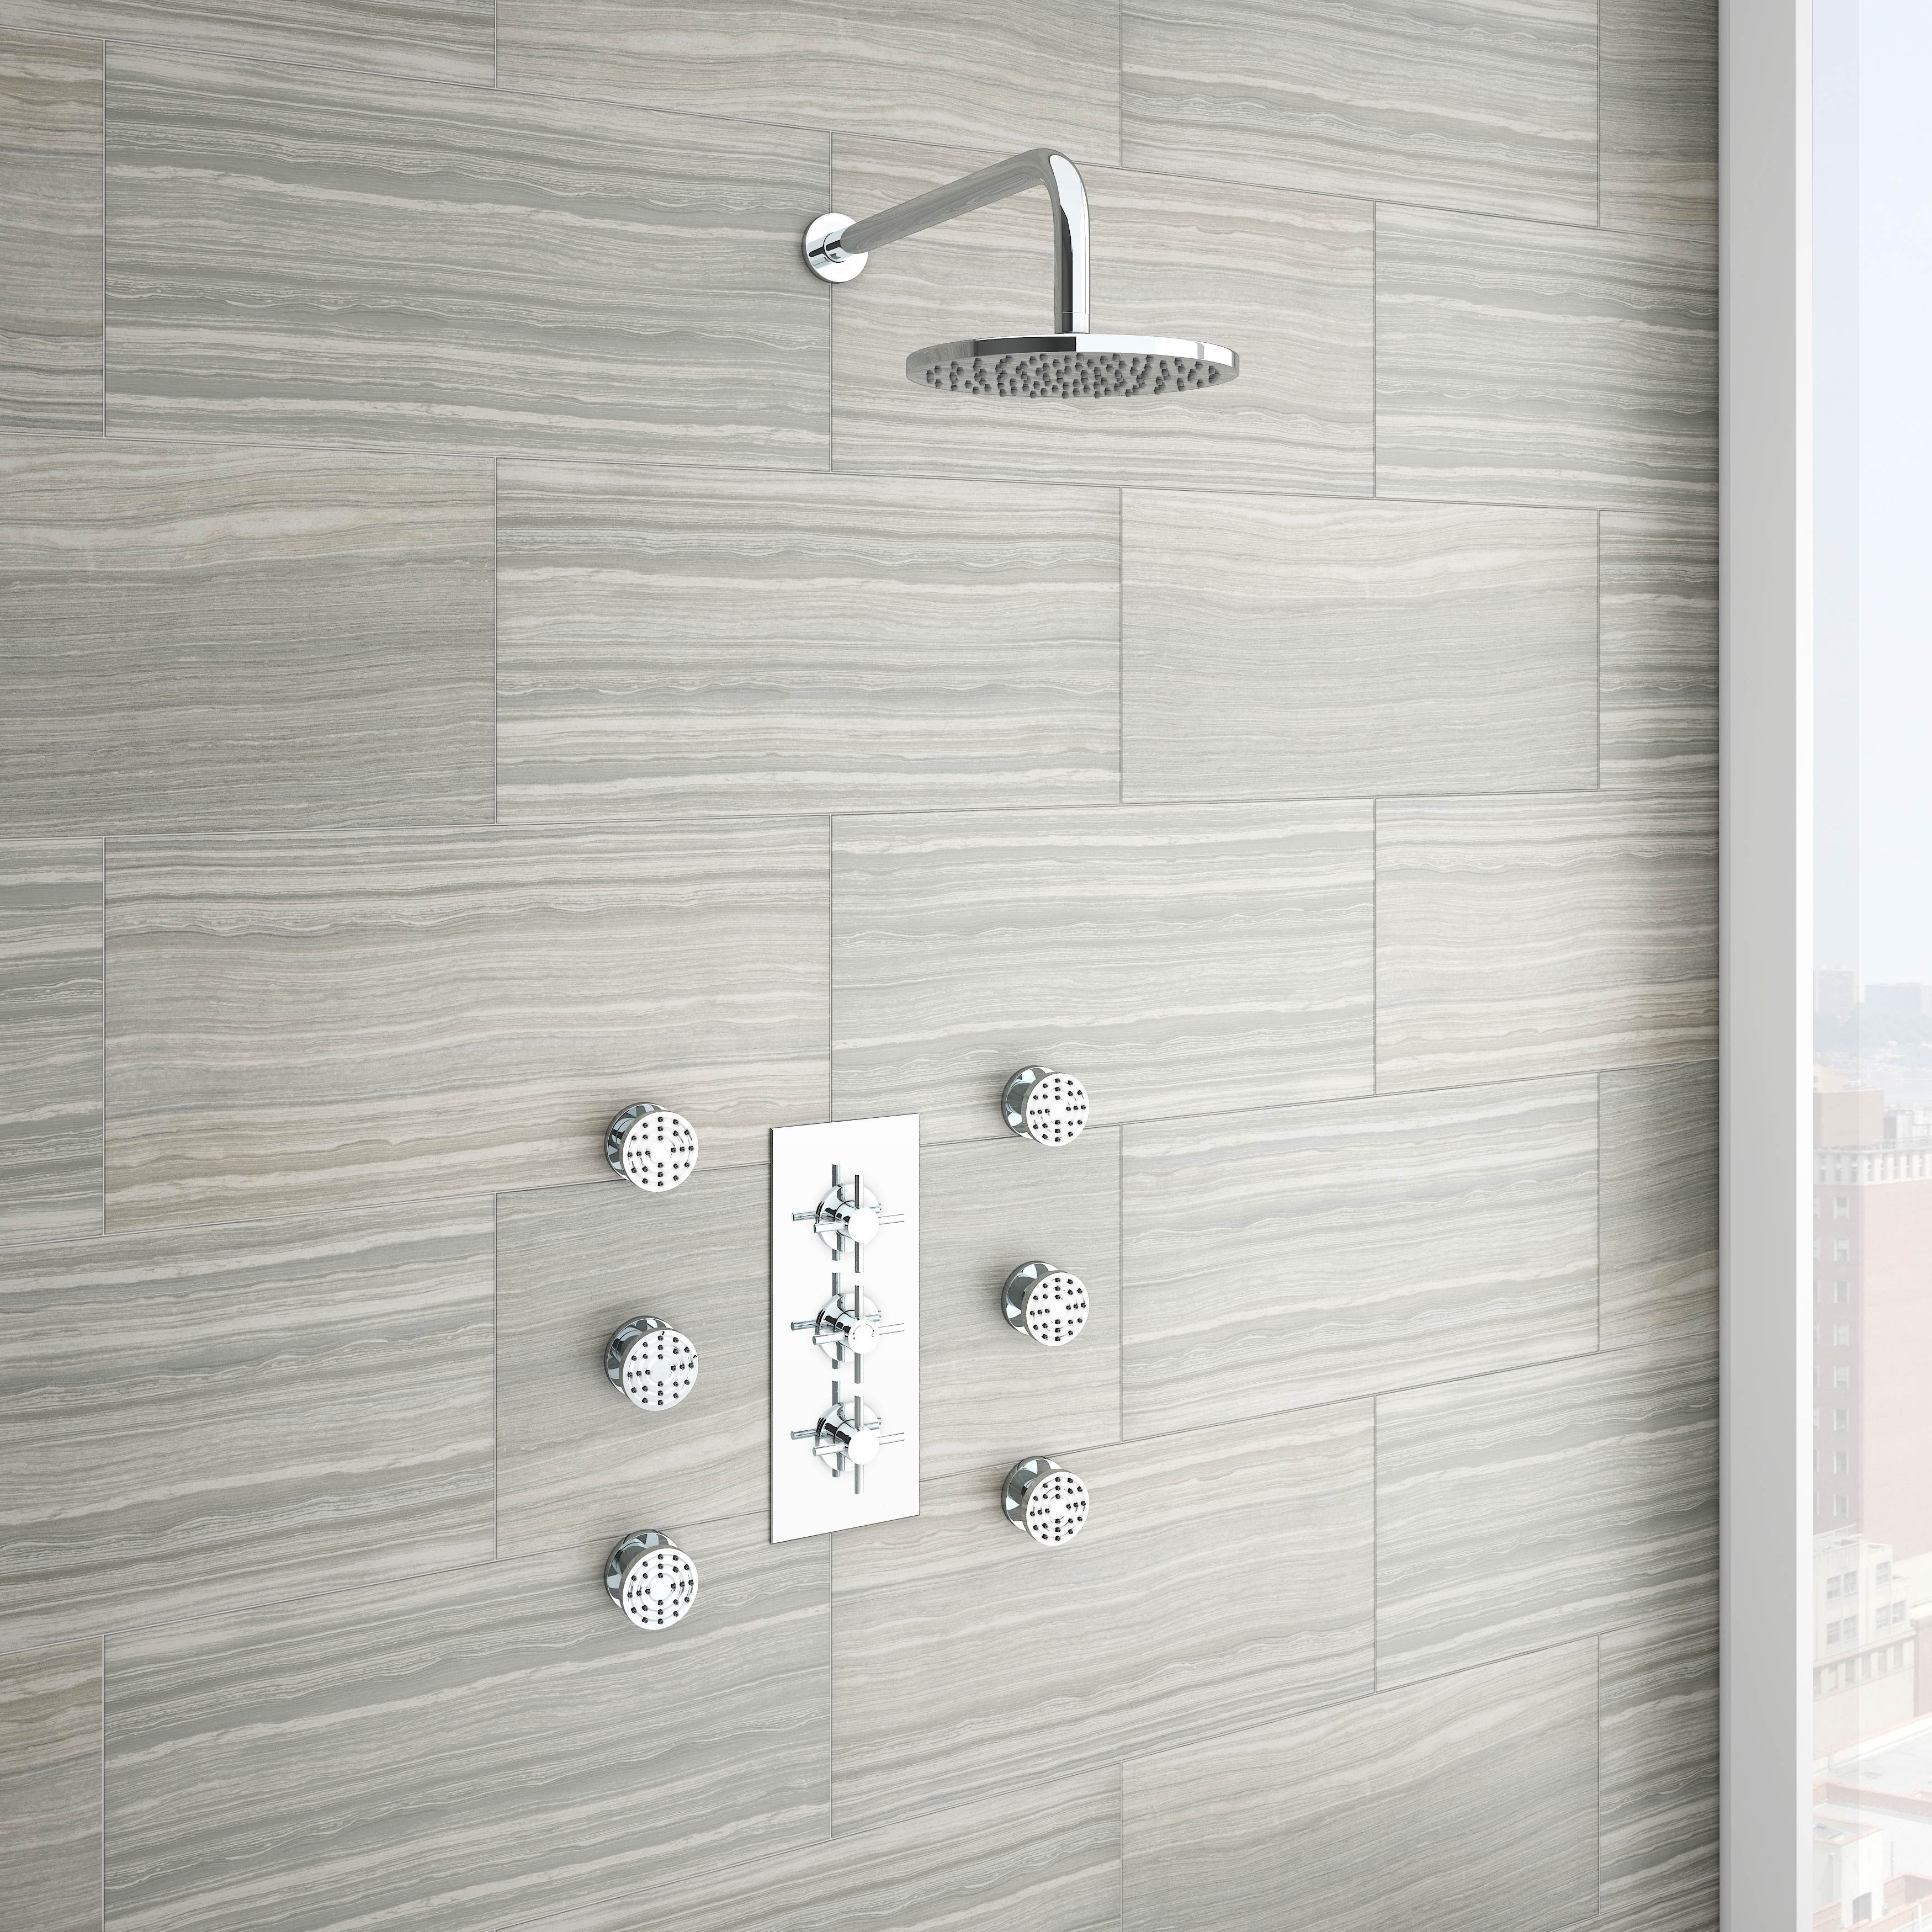 Monza Bone Wood Effect Wall And Floor Tiles Tile Bathroom Wood Effect Tiles Wooden Wall Panels